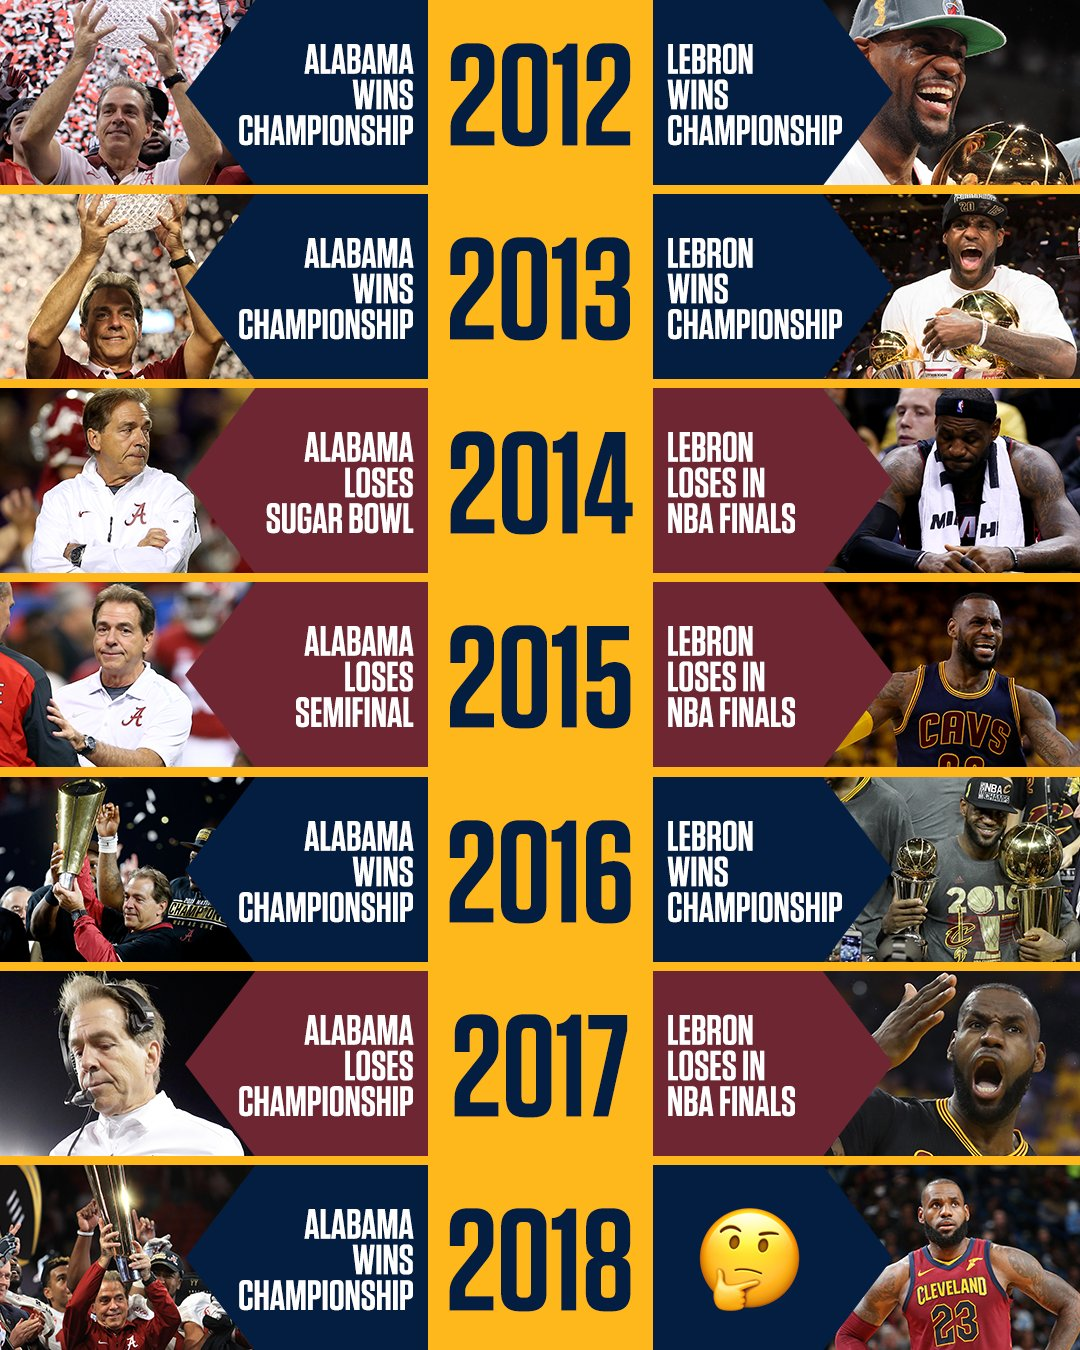 History and Nick Saban say LeBron James is going all the way this year. �� https://t.co/FiB8sZvtrZ